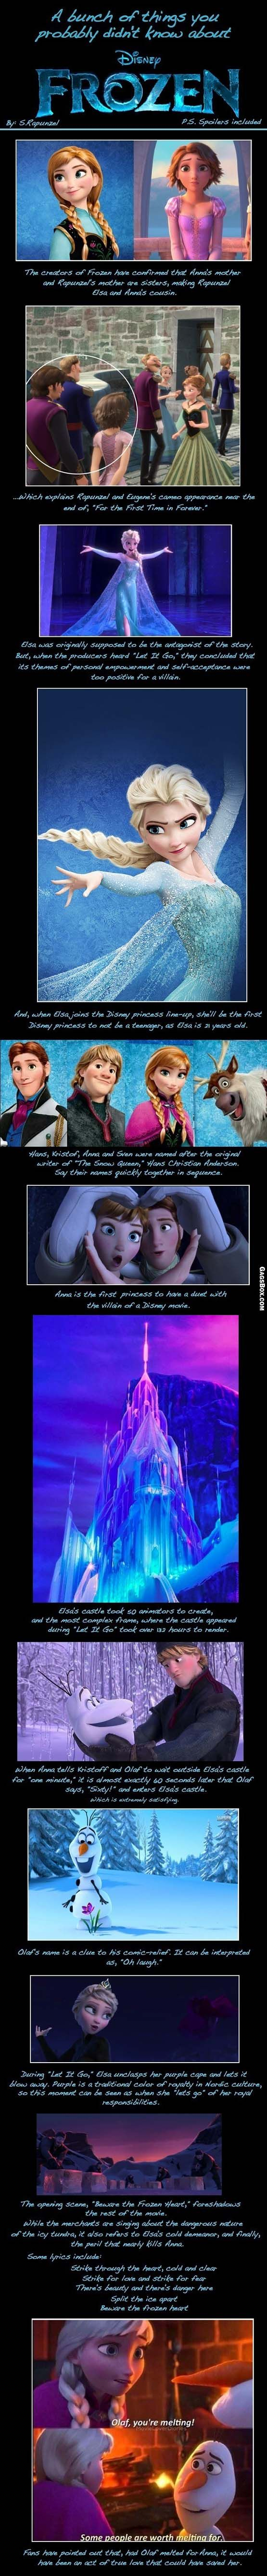 A Bunch Of Stuff You Probs Didn't Know About Frozen